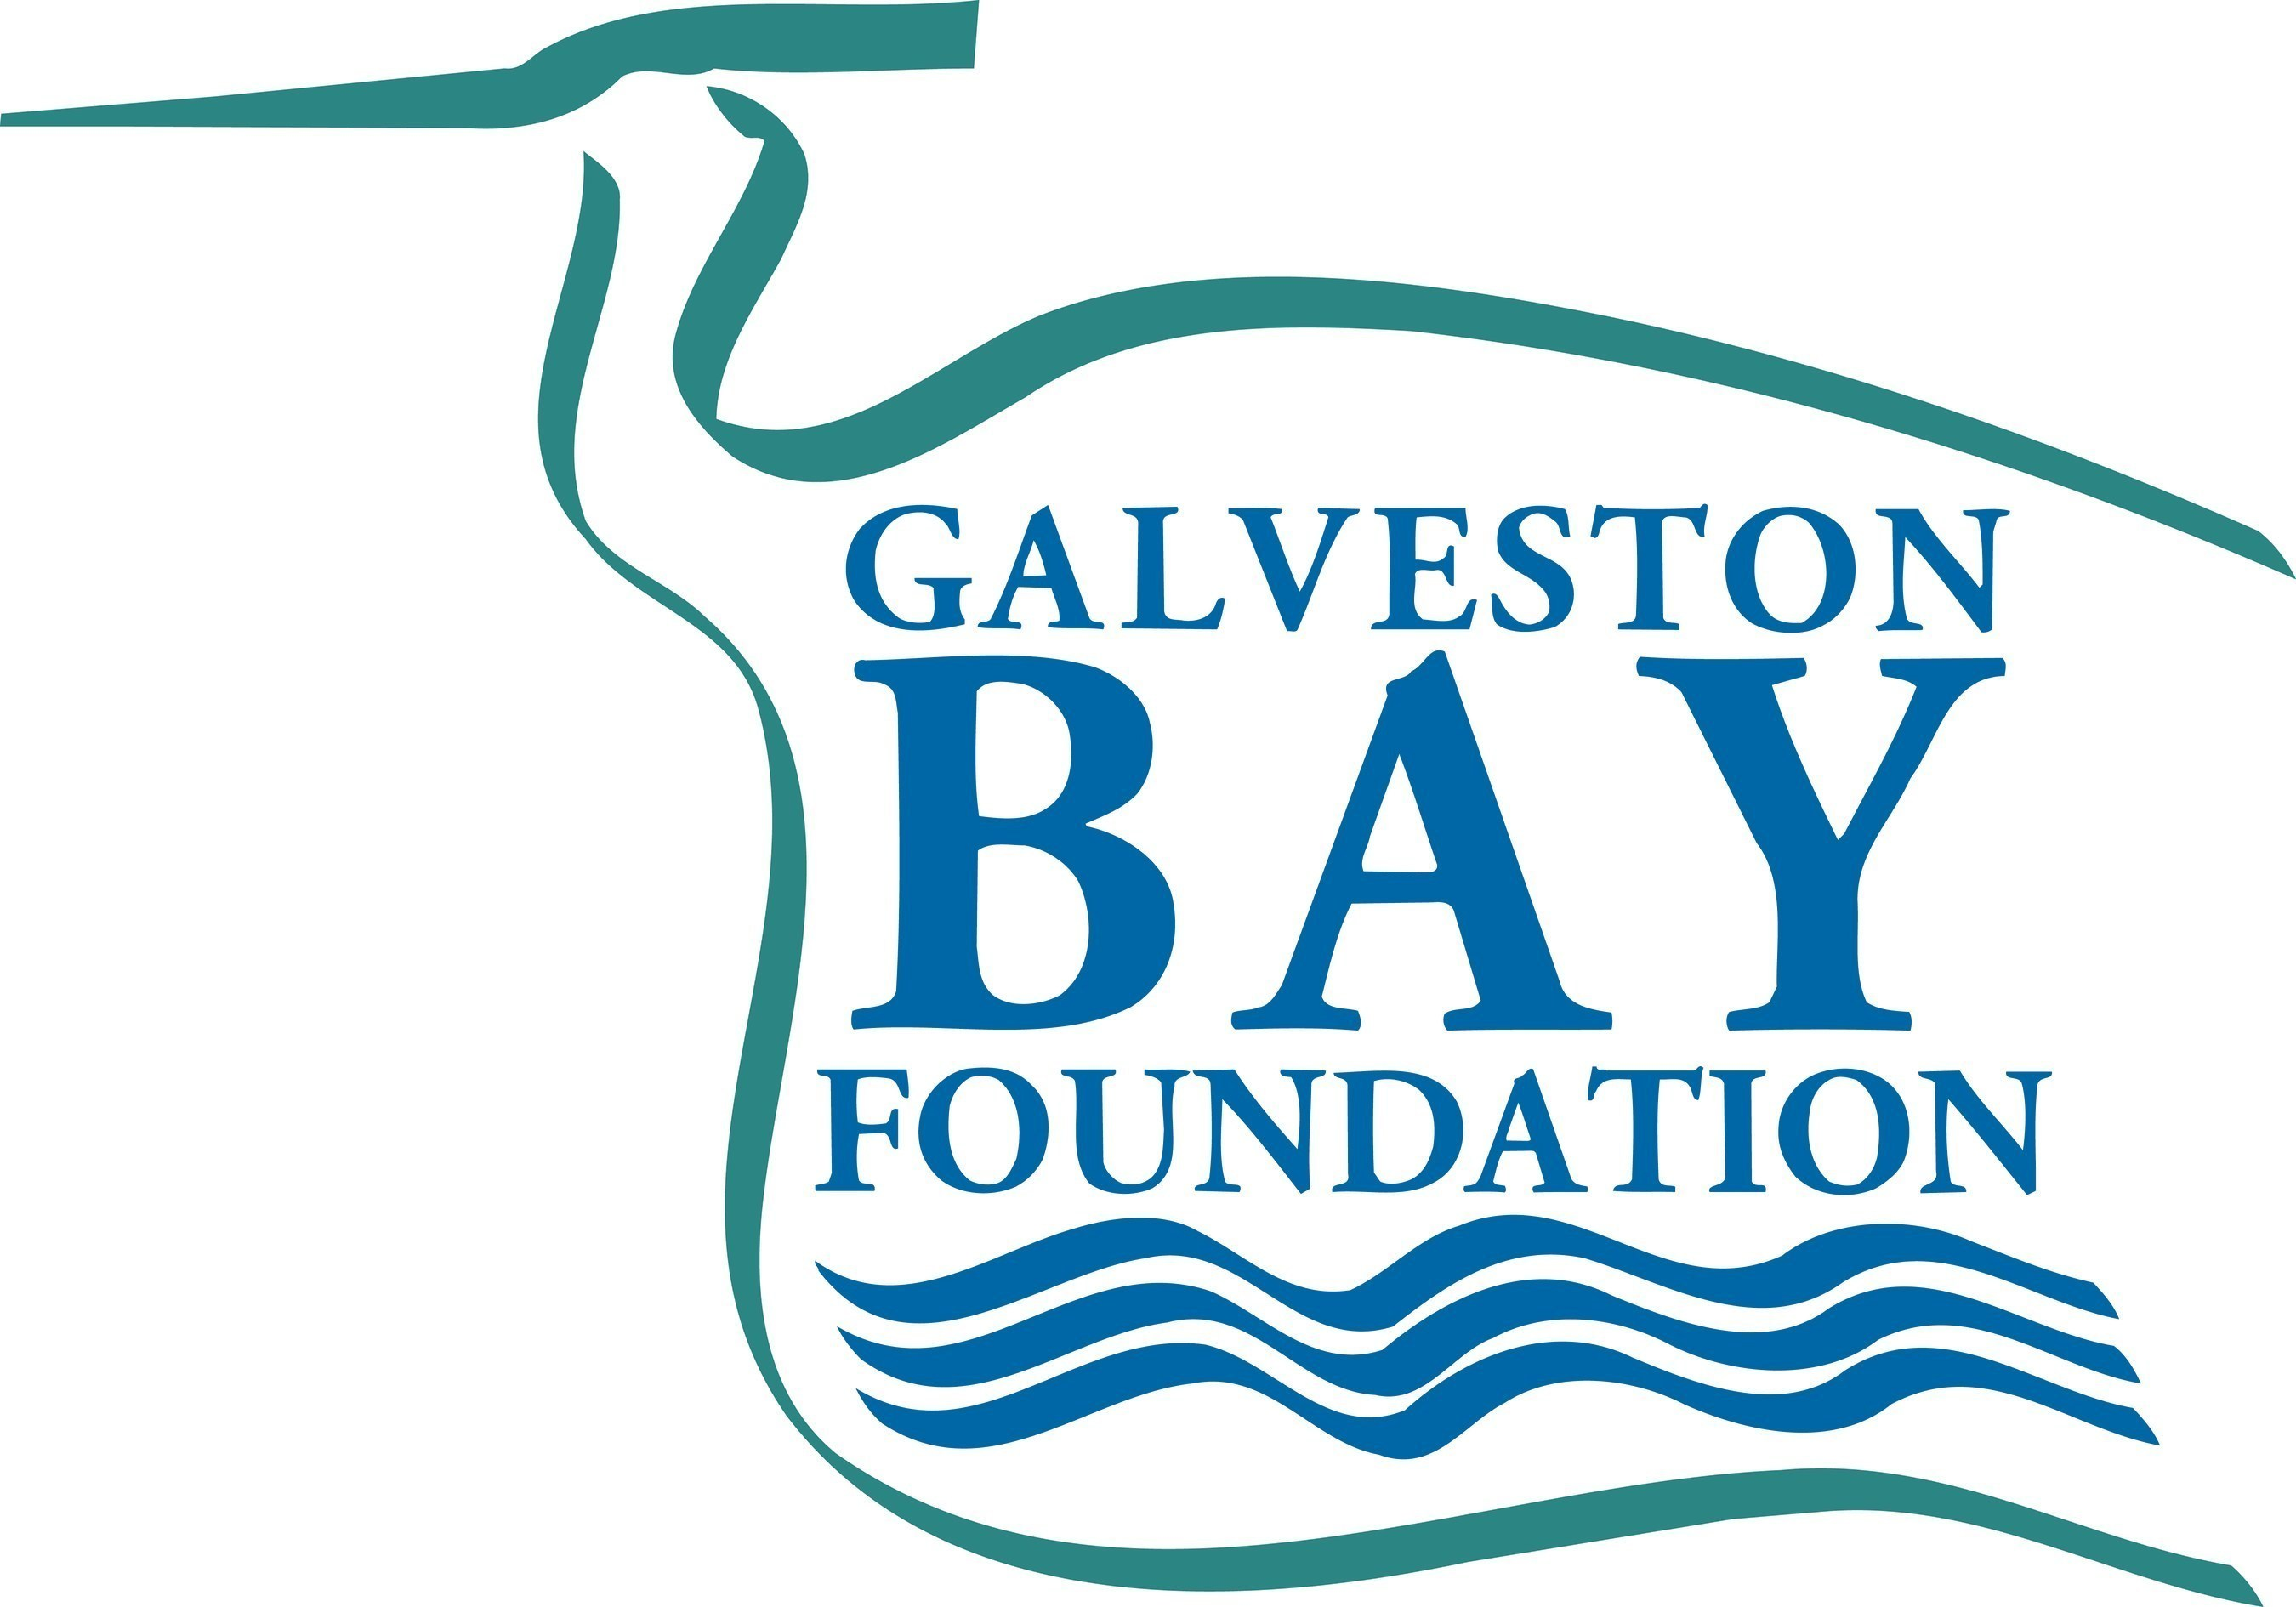 The Galveston Bay Foundation and the Houston Advanced Research Center have released the second annual Galveston Bay Report Card, an easy-to-understand grading system to communicate the health of the Bay to the public.